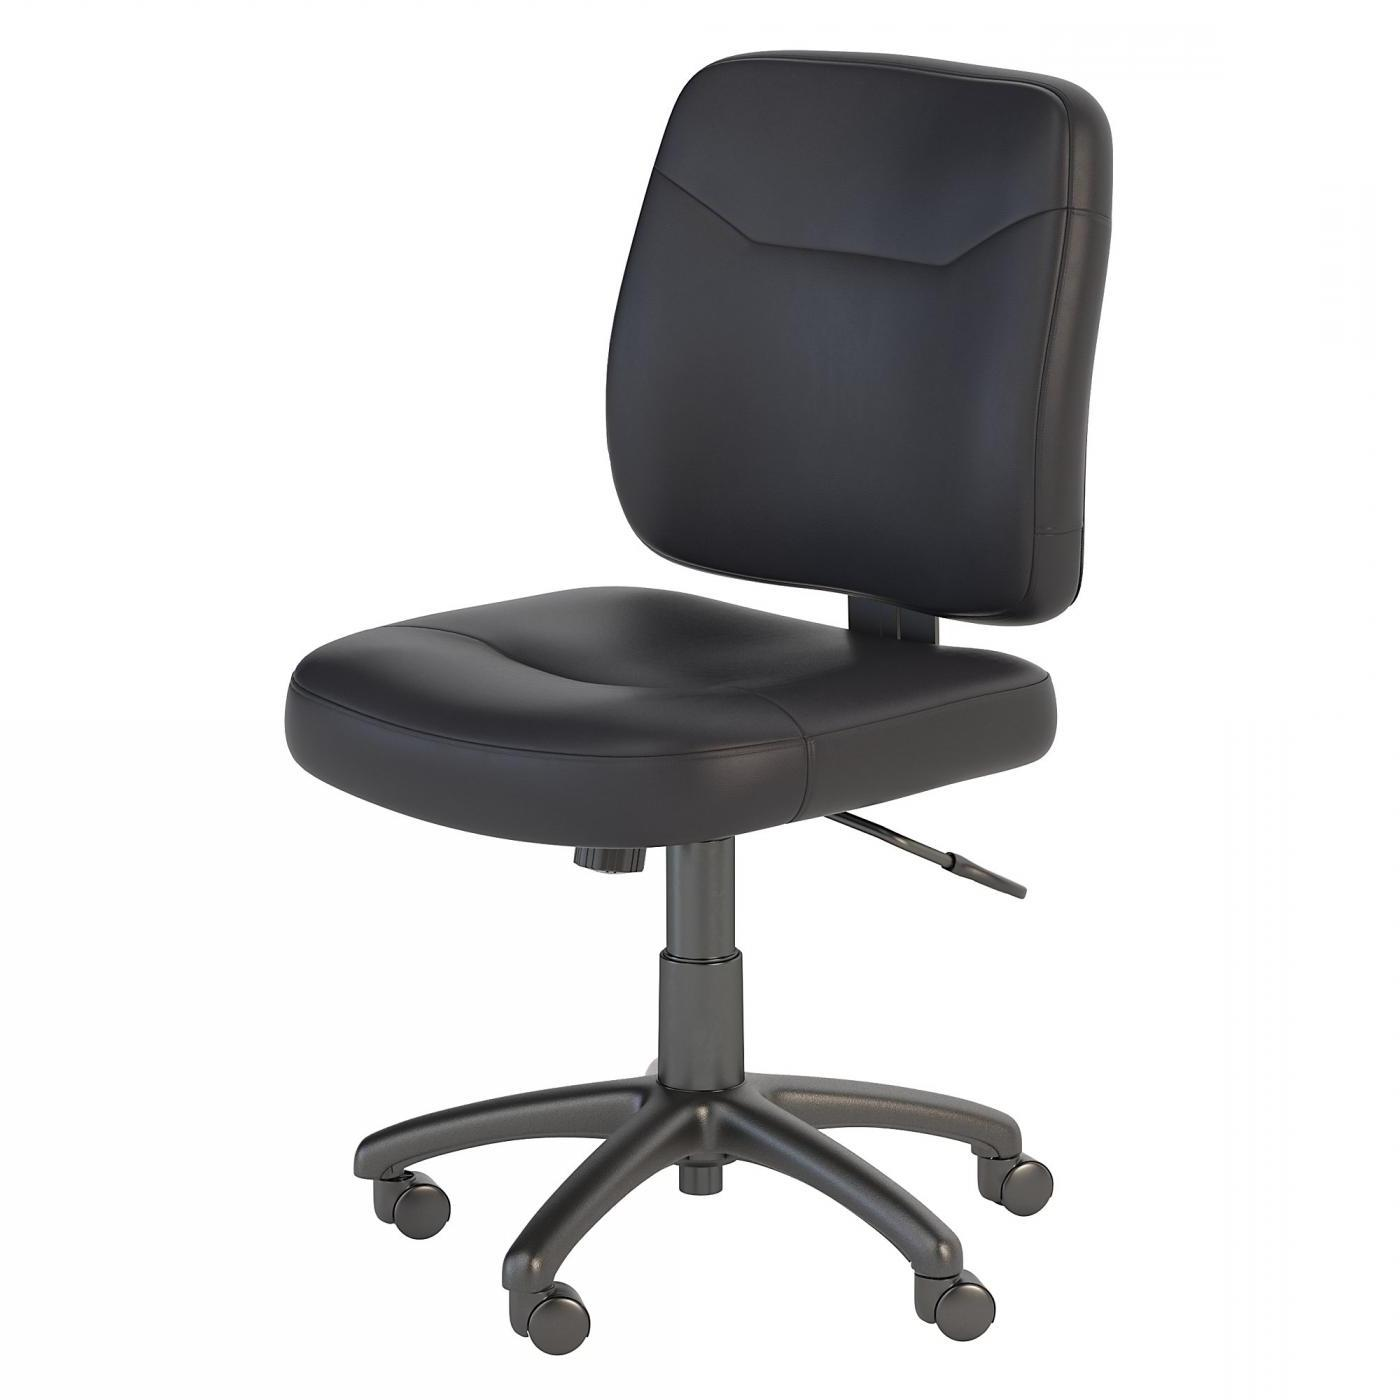 <font color=#c60><b>BUSH BUSINESS FURNITURE STANTON LEATHER TASK CHAIR. FREE SHIPPING</font></b> </font></b>